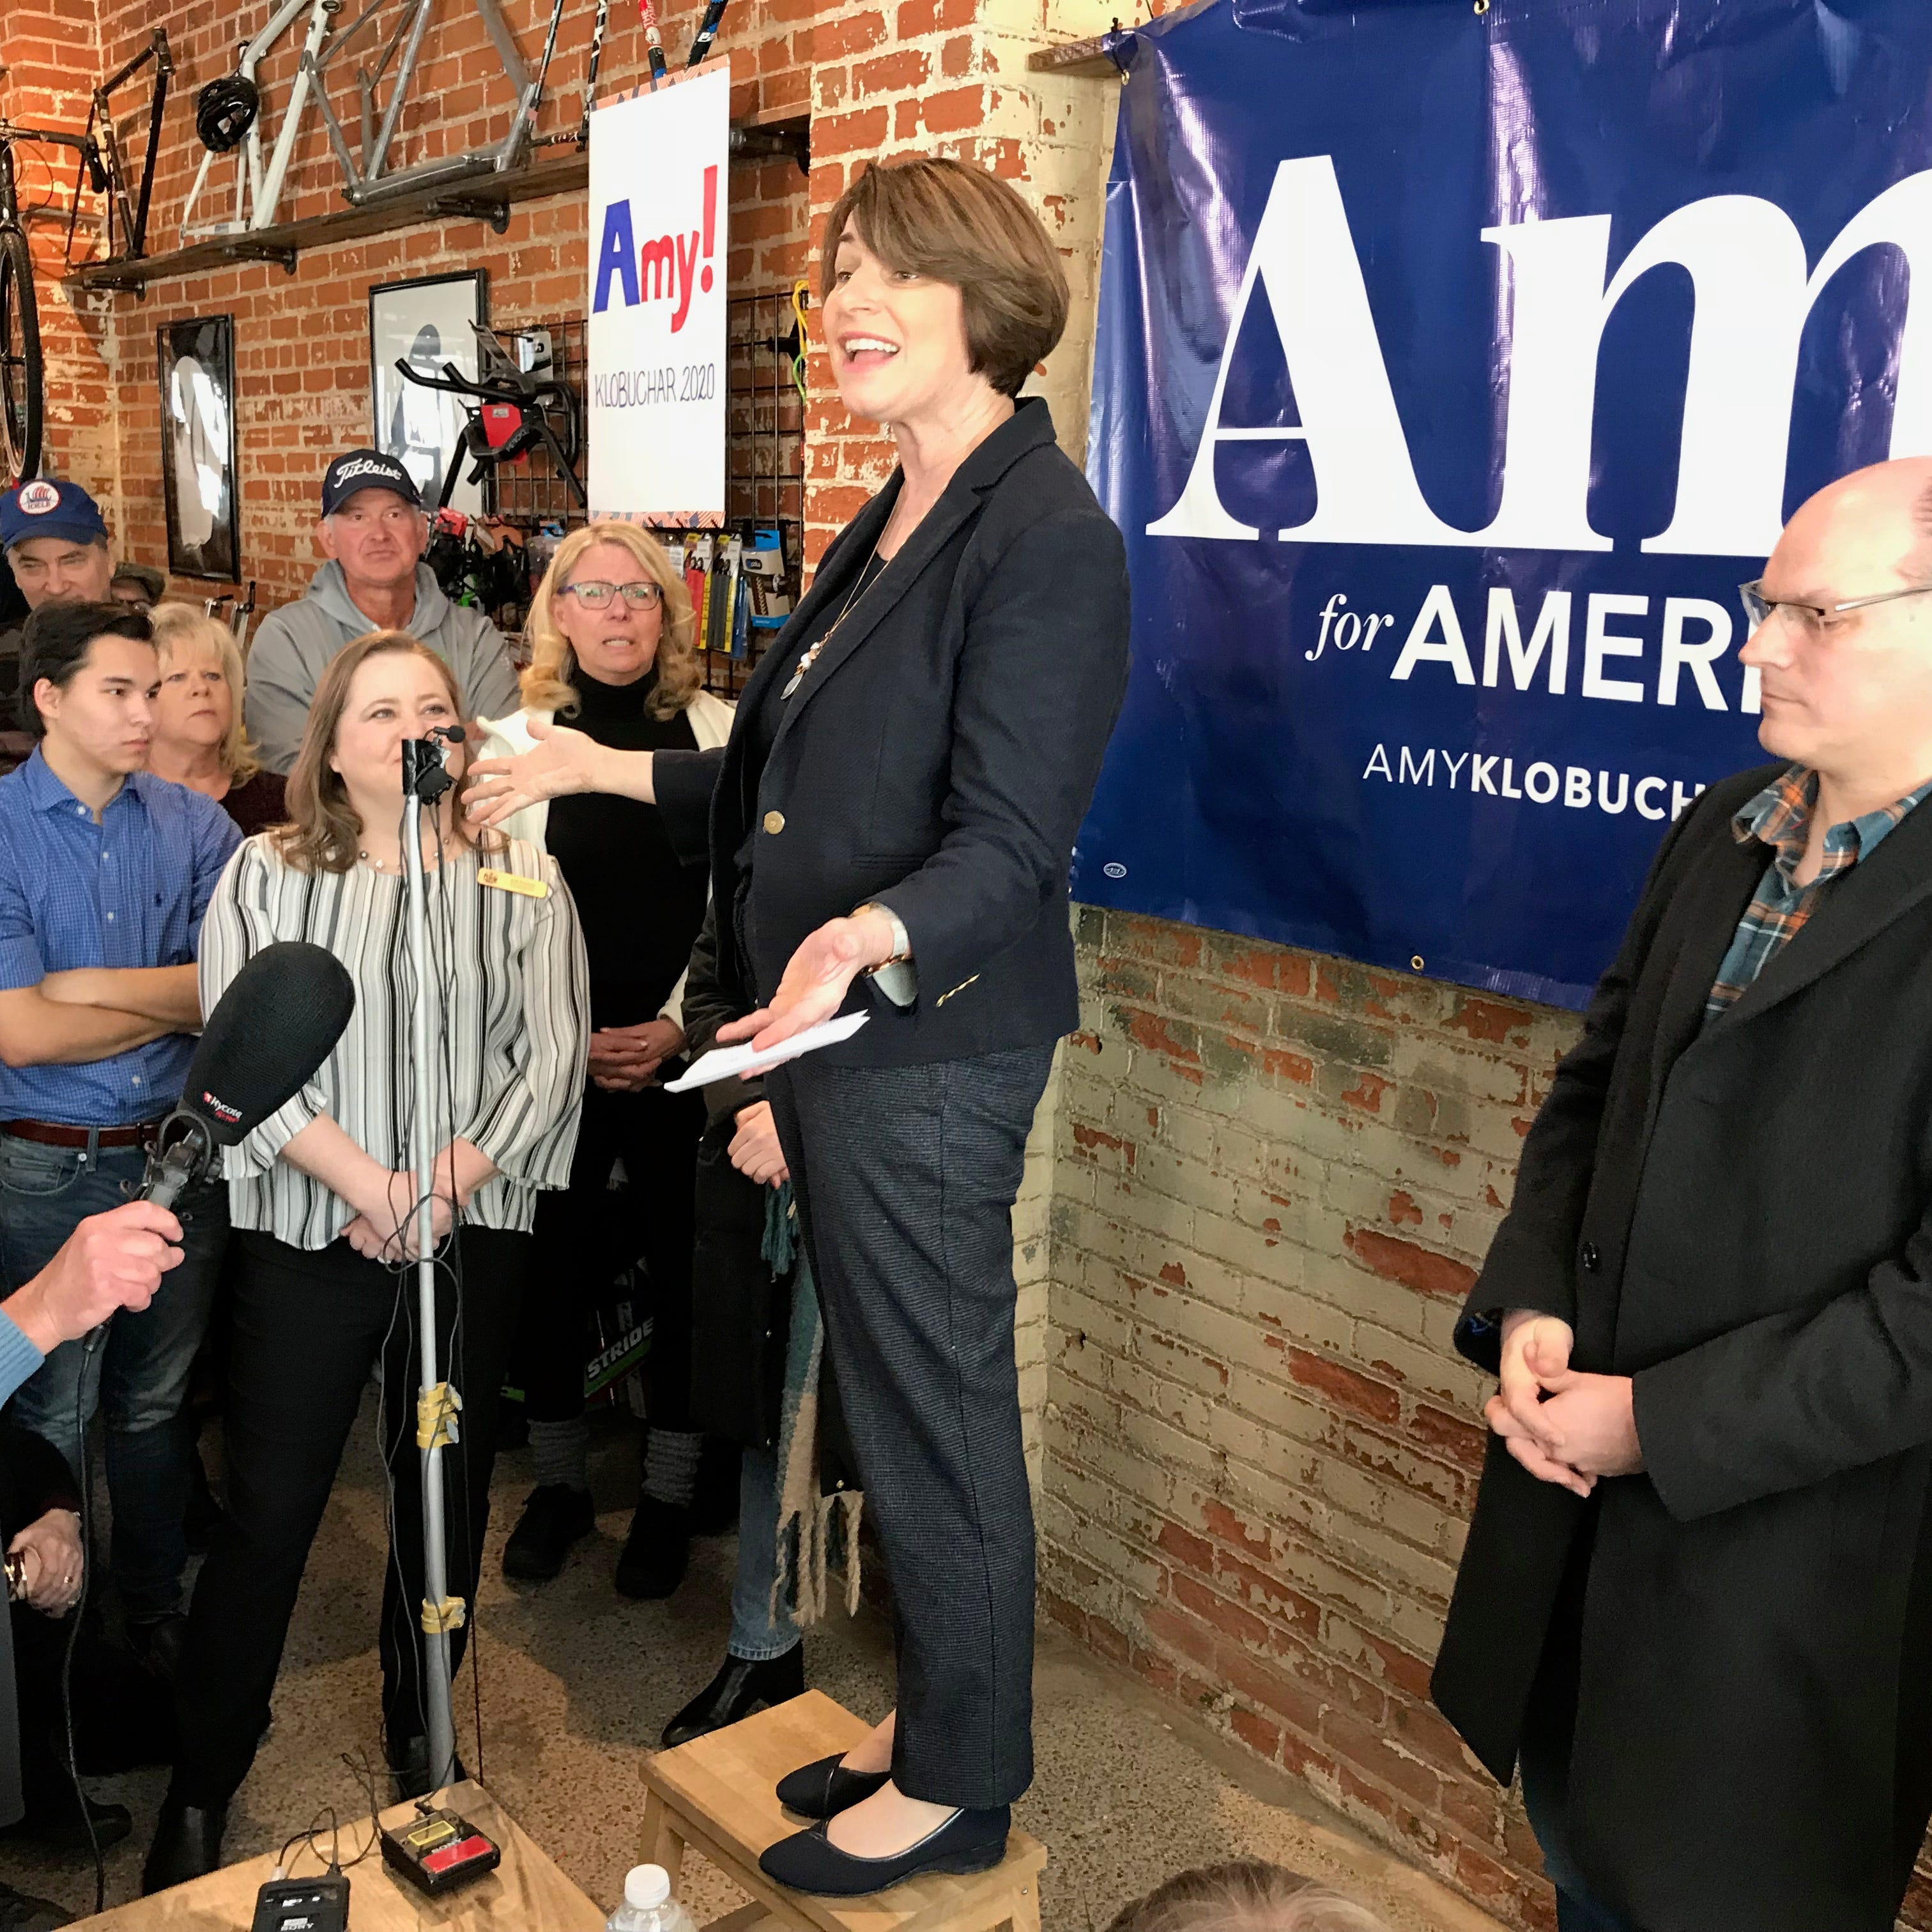 2020 presidential hopeful and 'senator next door' Amy Klobuchar campaigns in Eau Claire